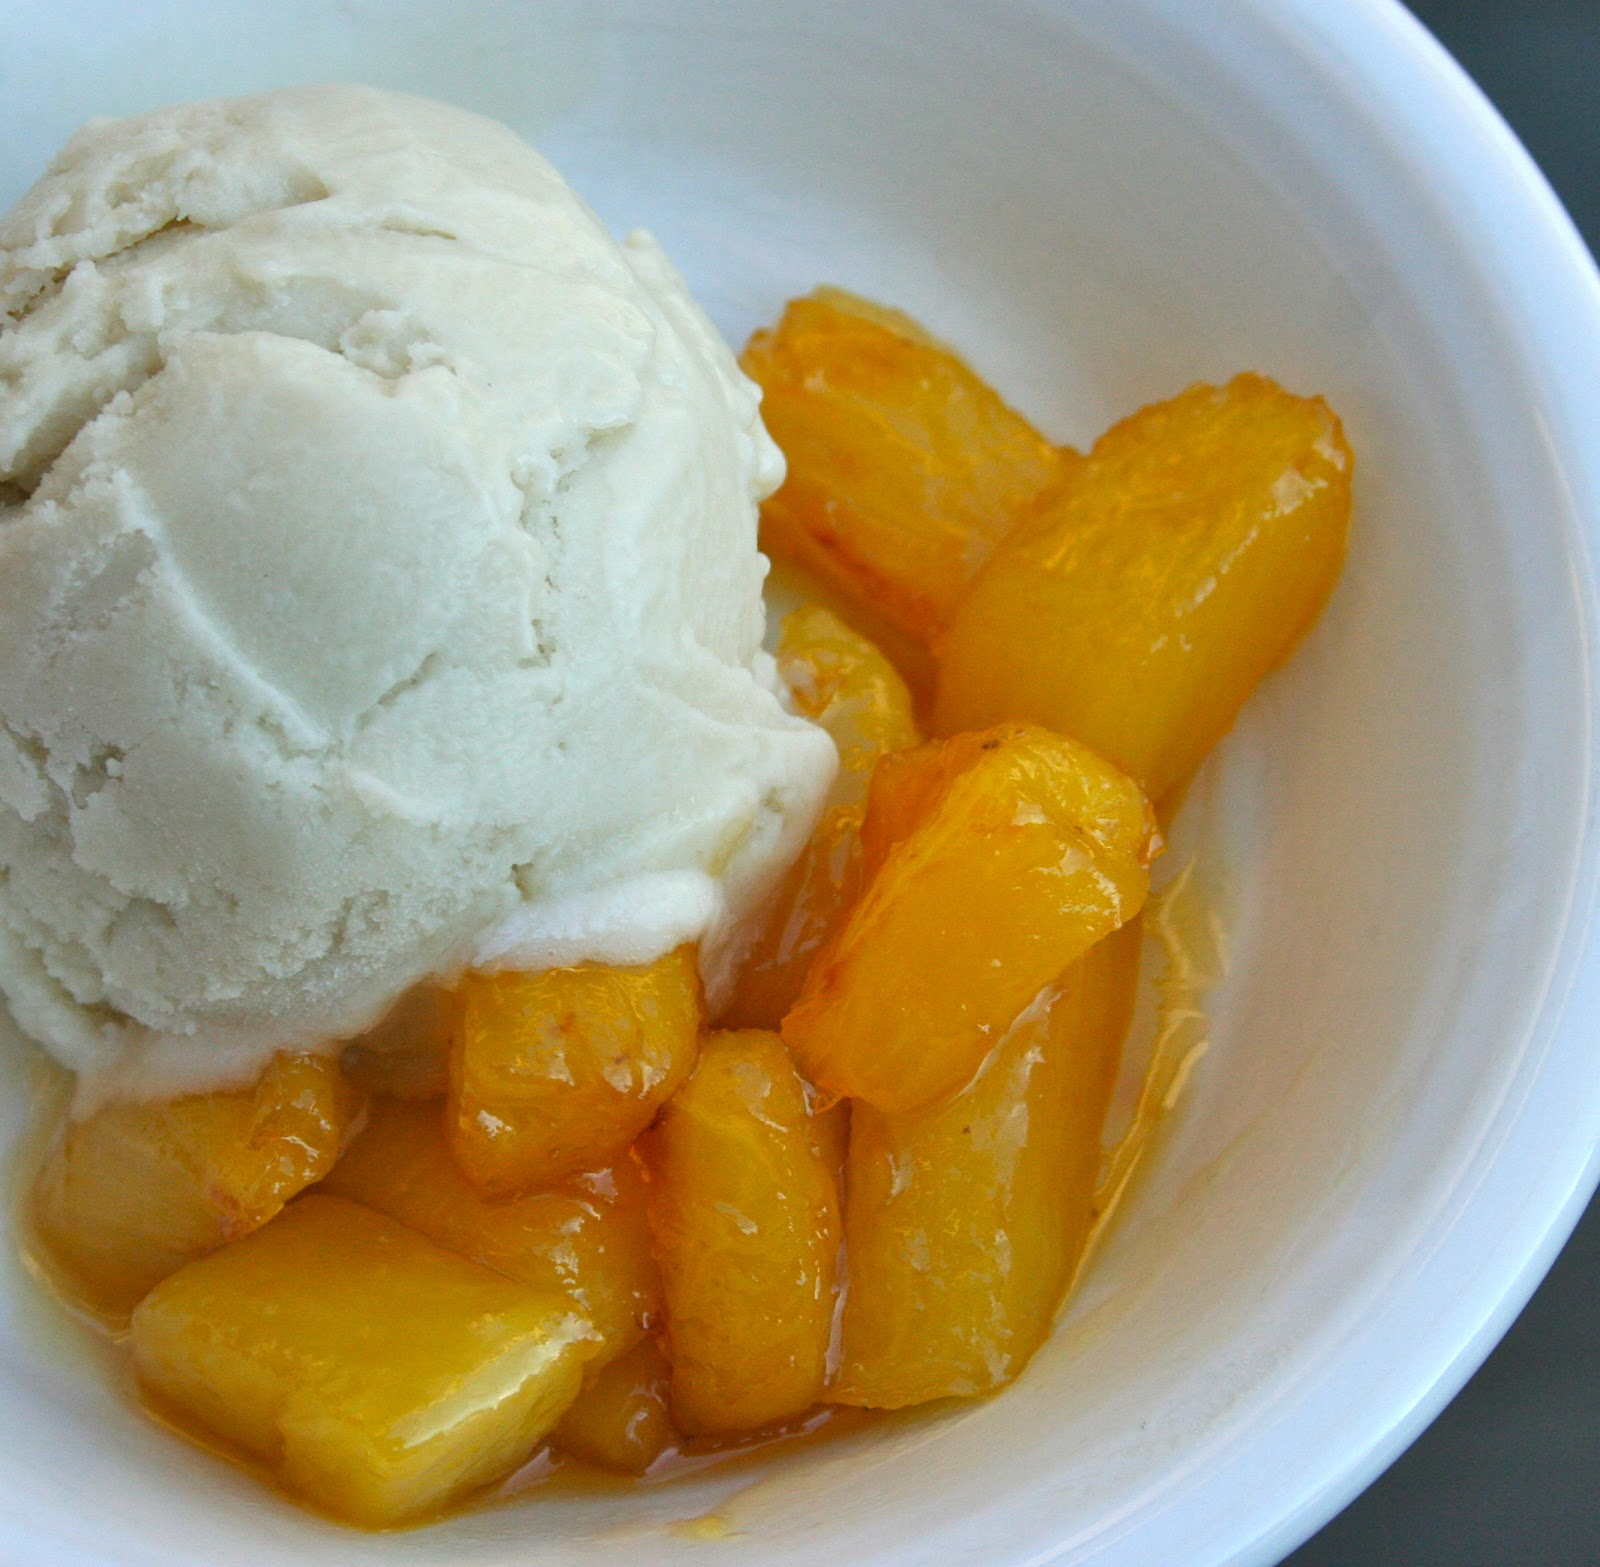 Lemongrass Ice Cream with Pineapple Compote